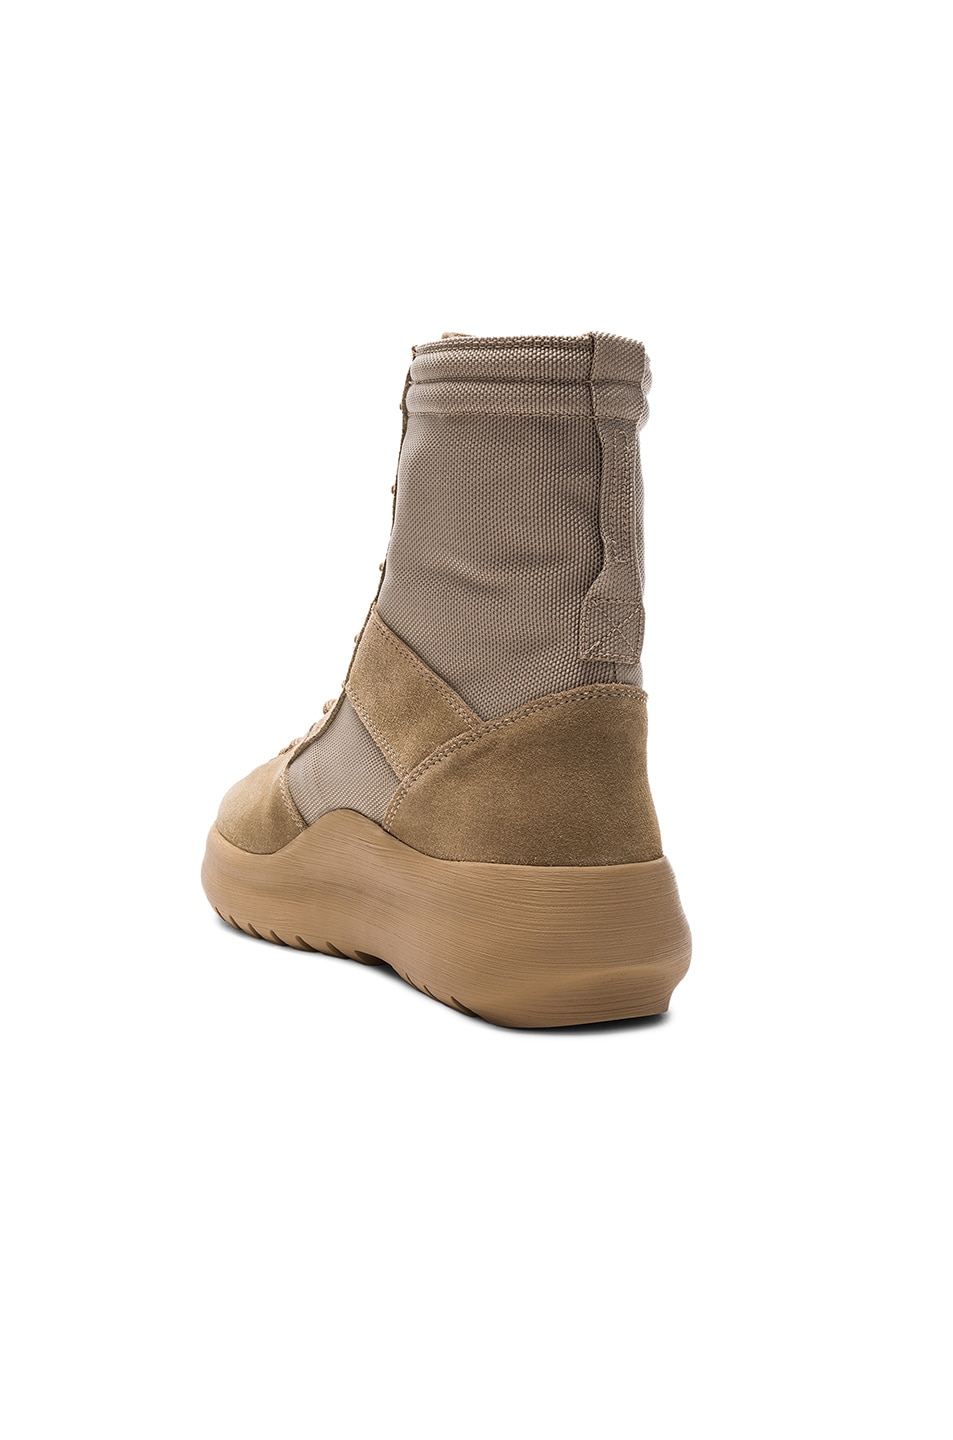 0693ed252f9 Image 3 of YEEZY Season 3 Military Boots in Rock